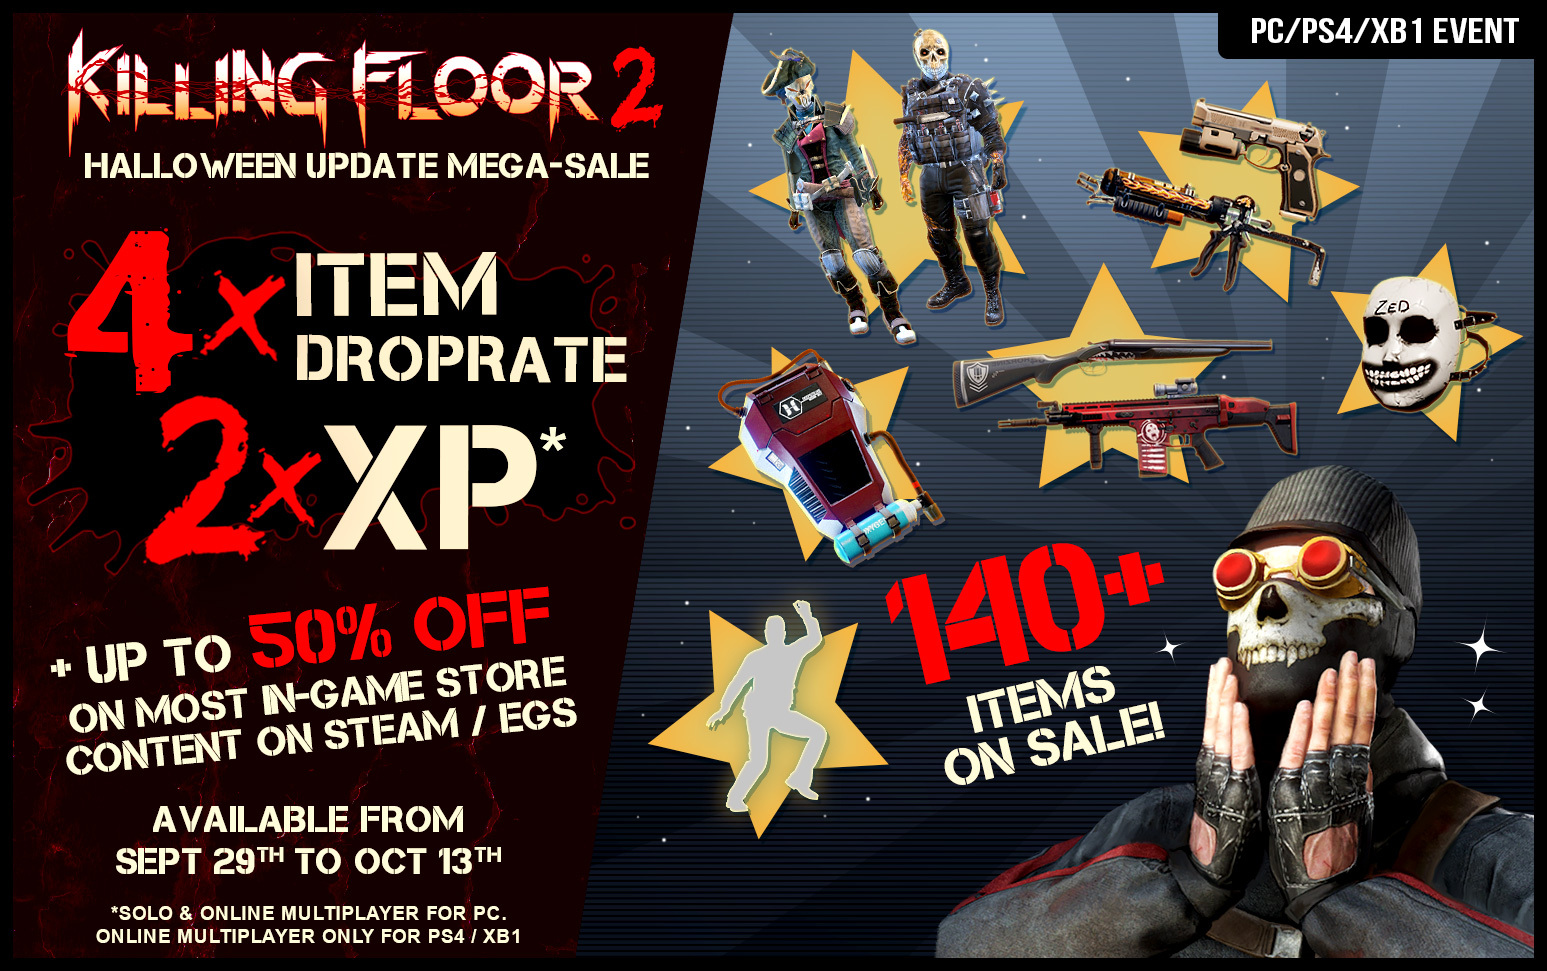 KF2XPSept2020All.jpg